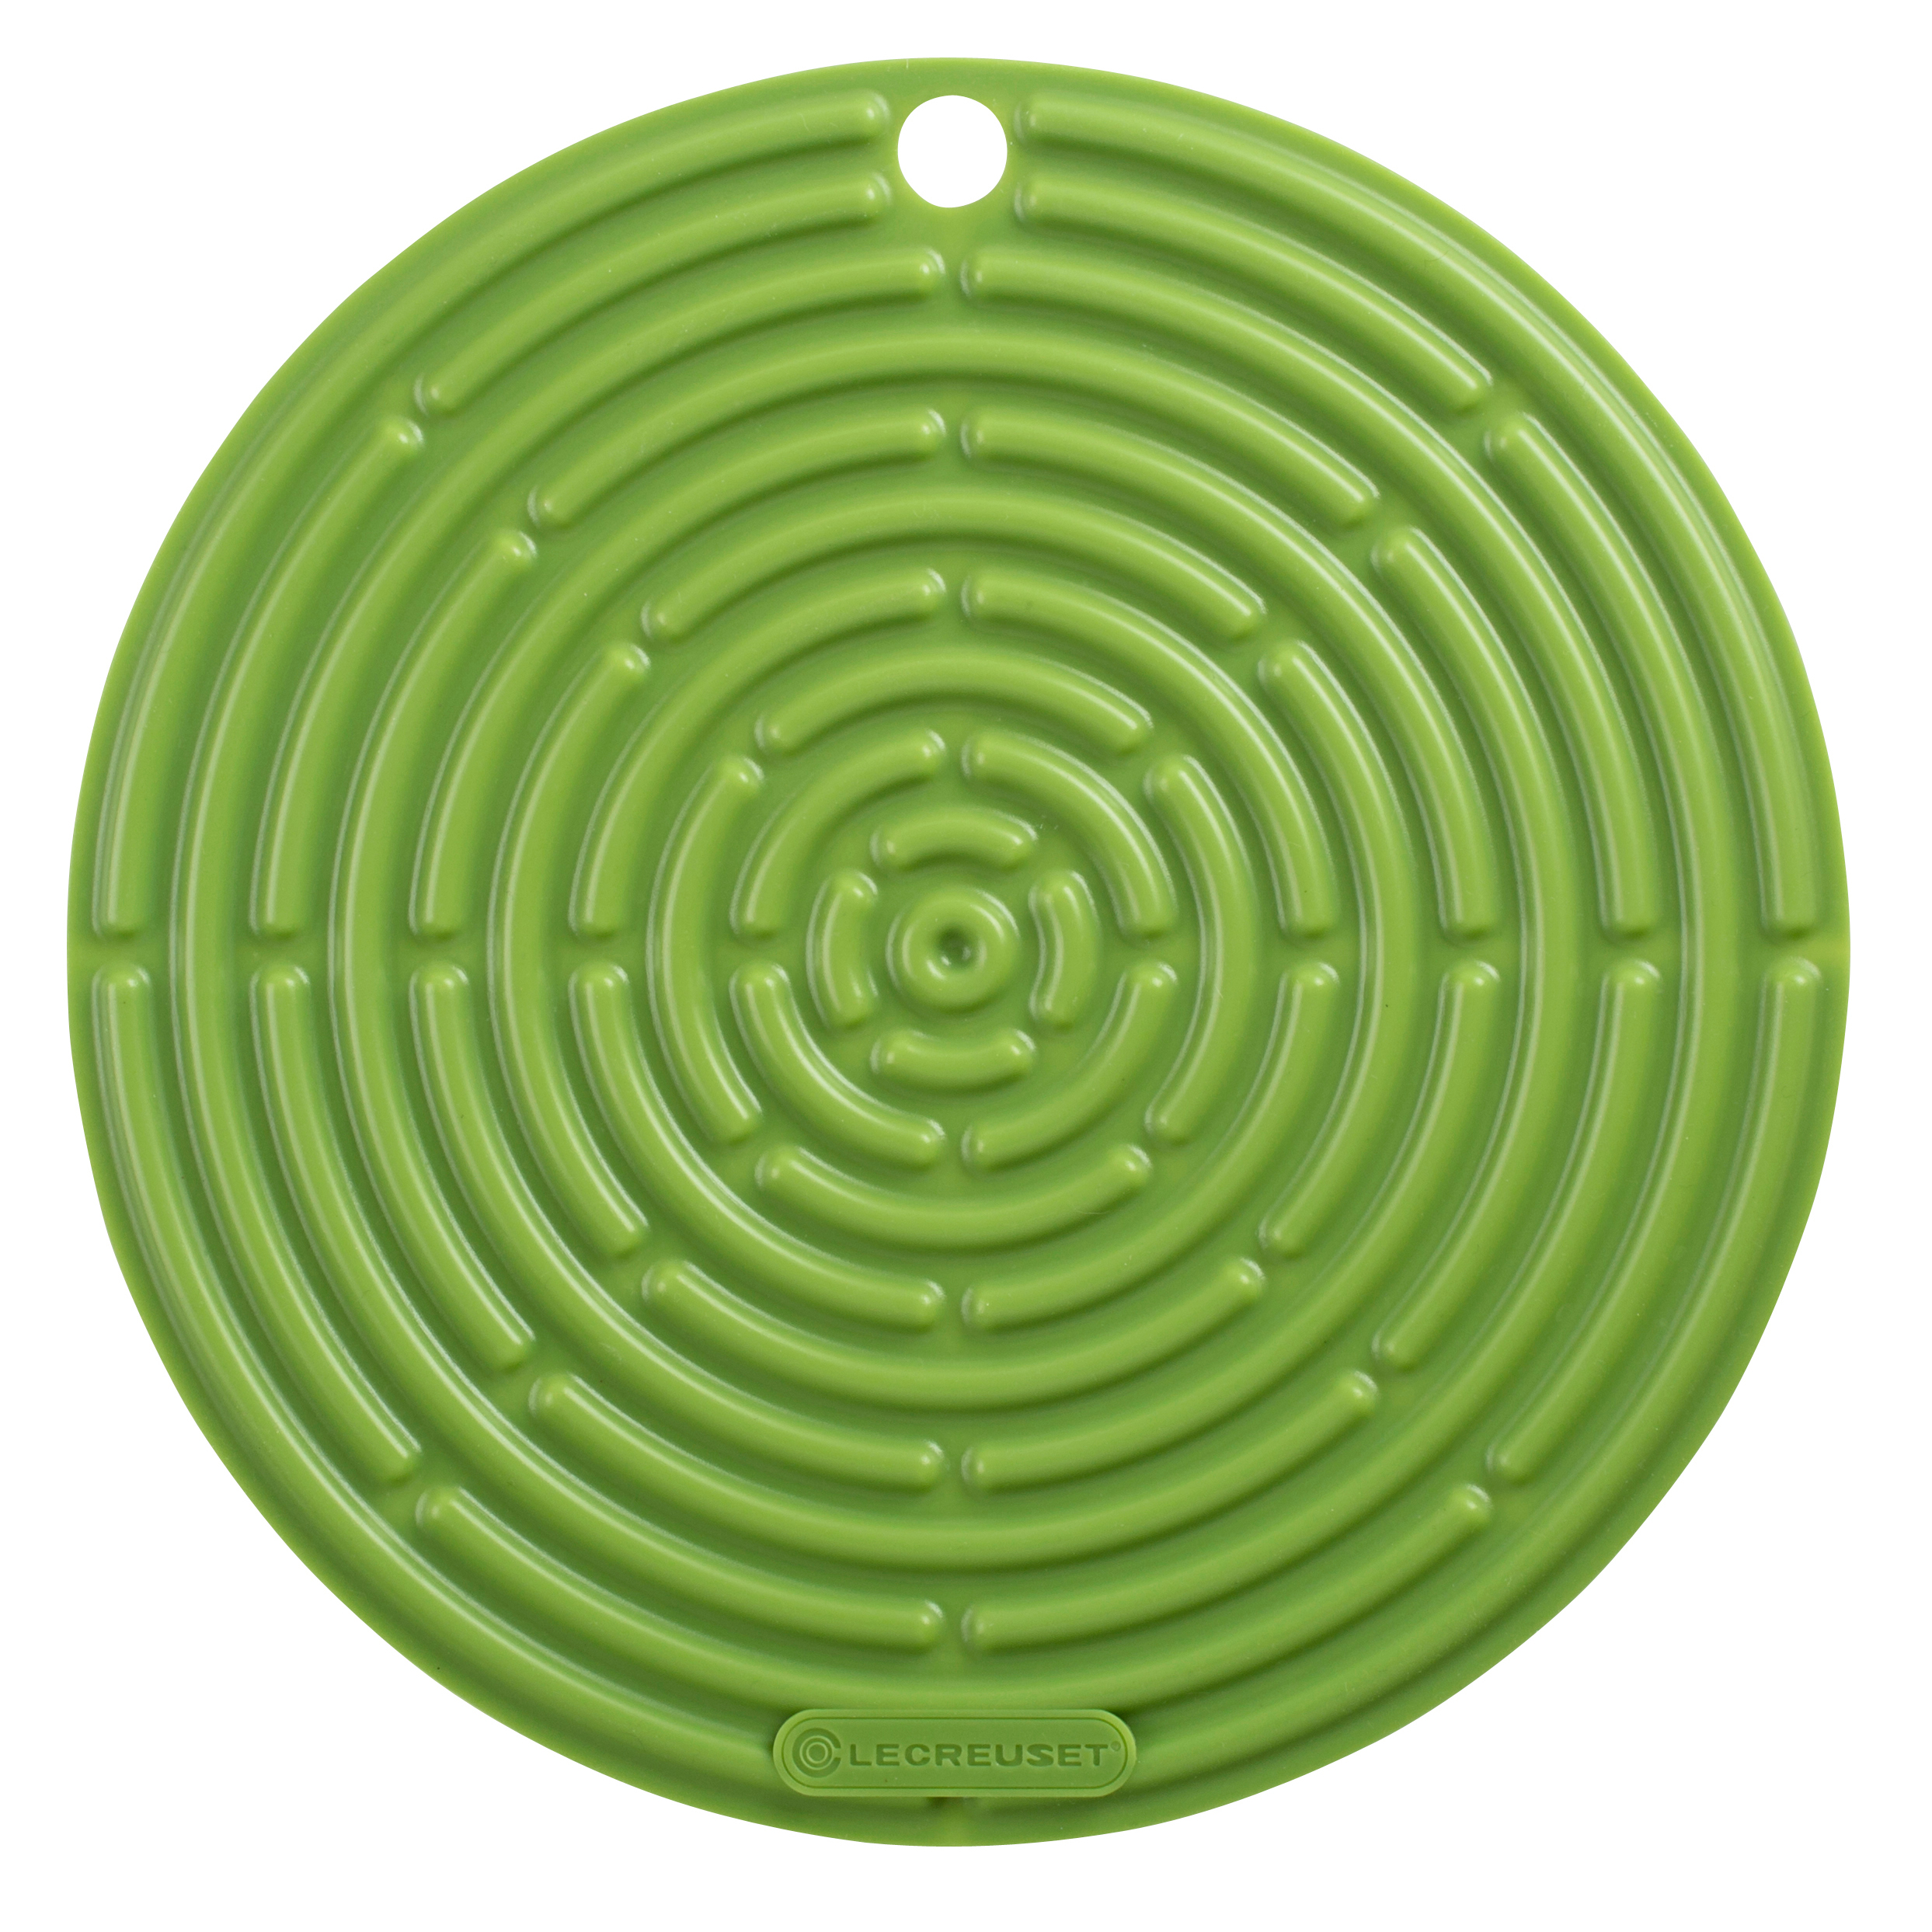 Le Creuset Palm Silicone Cool Tool Hot Pad